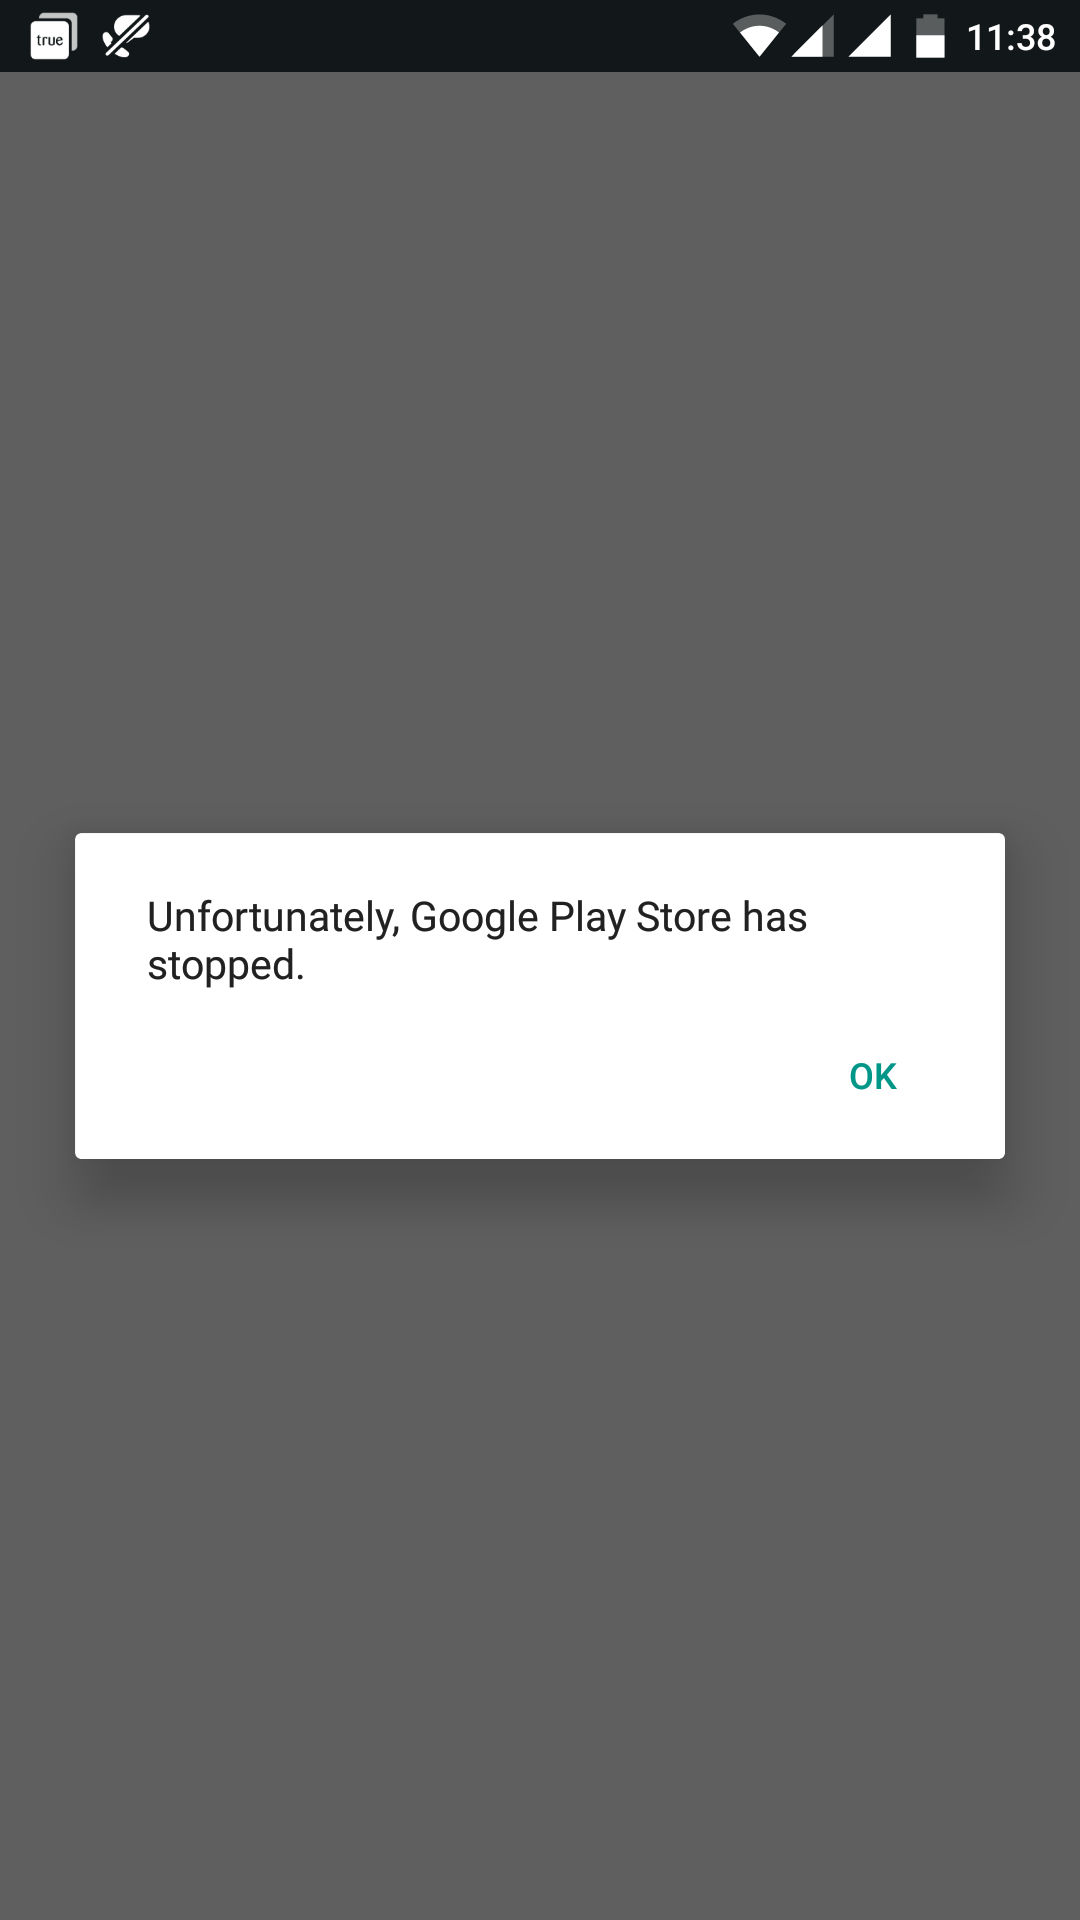 One plus X- Unfortunately, Google Play Services has stopped